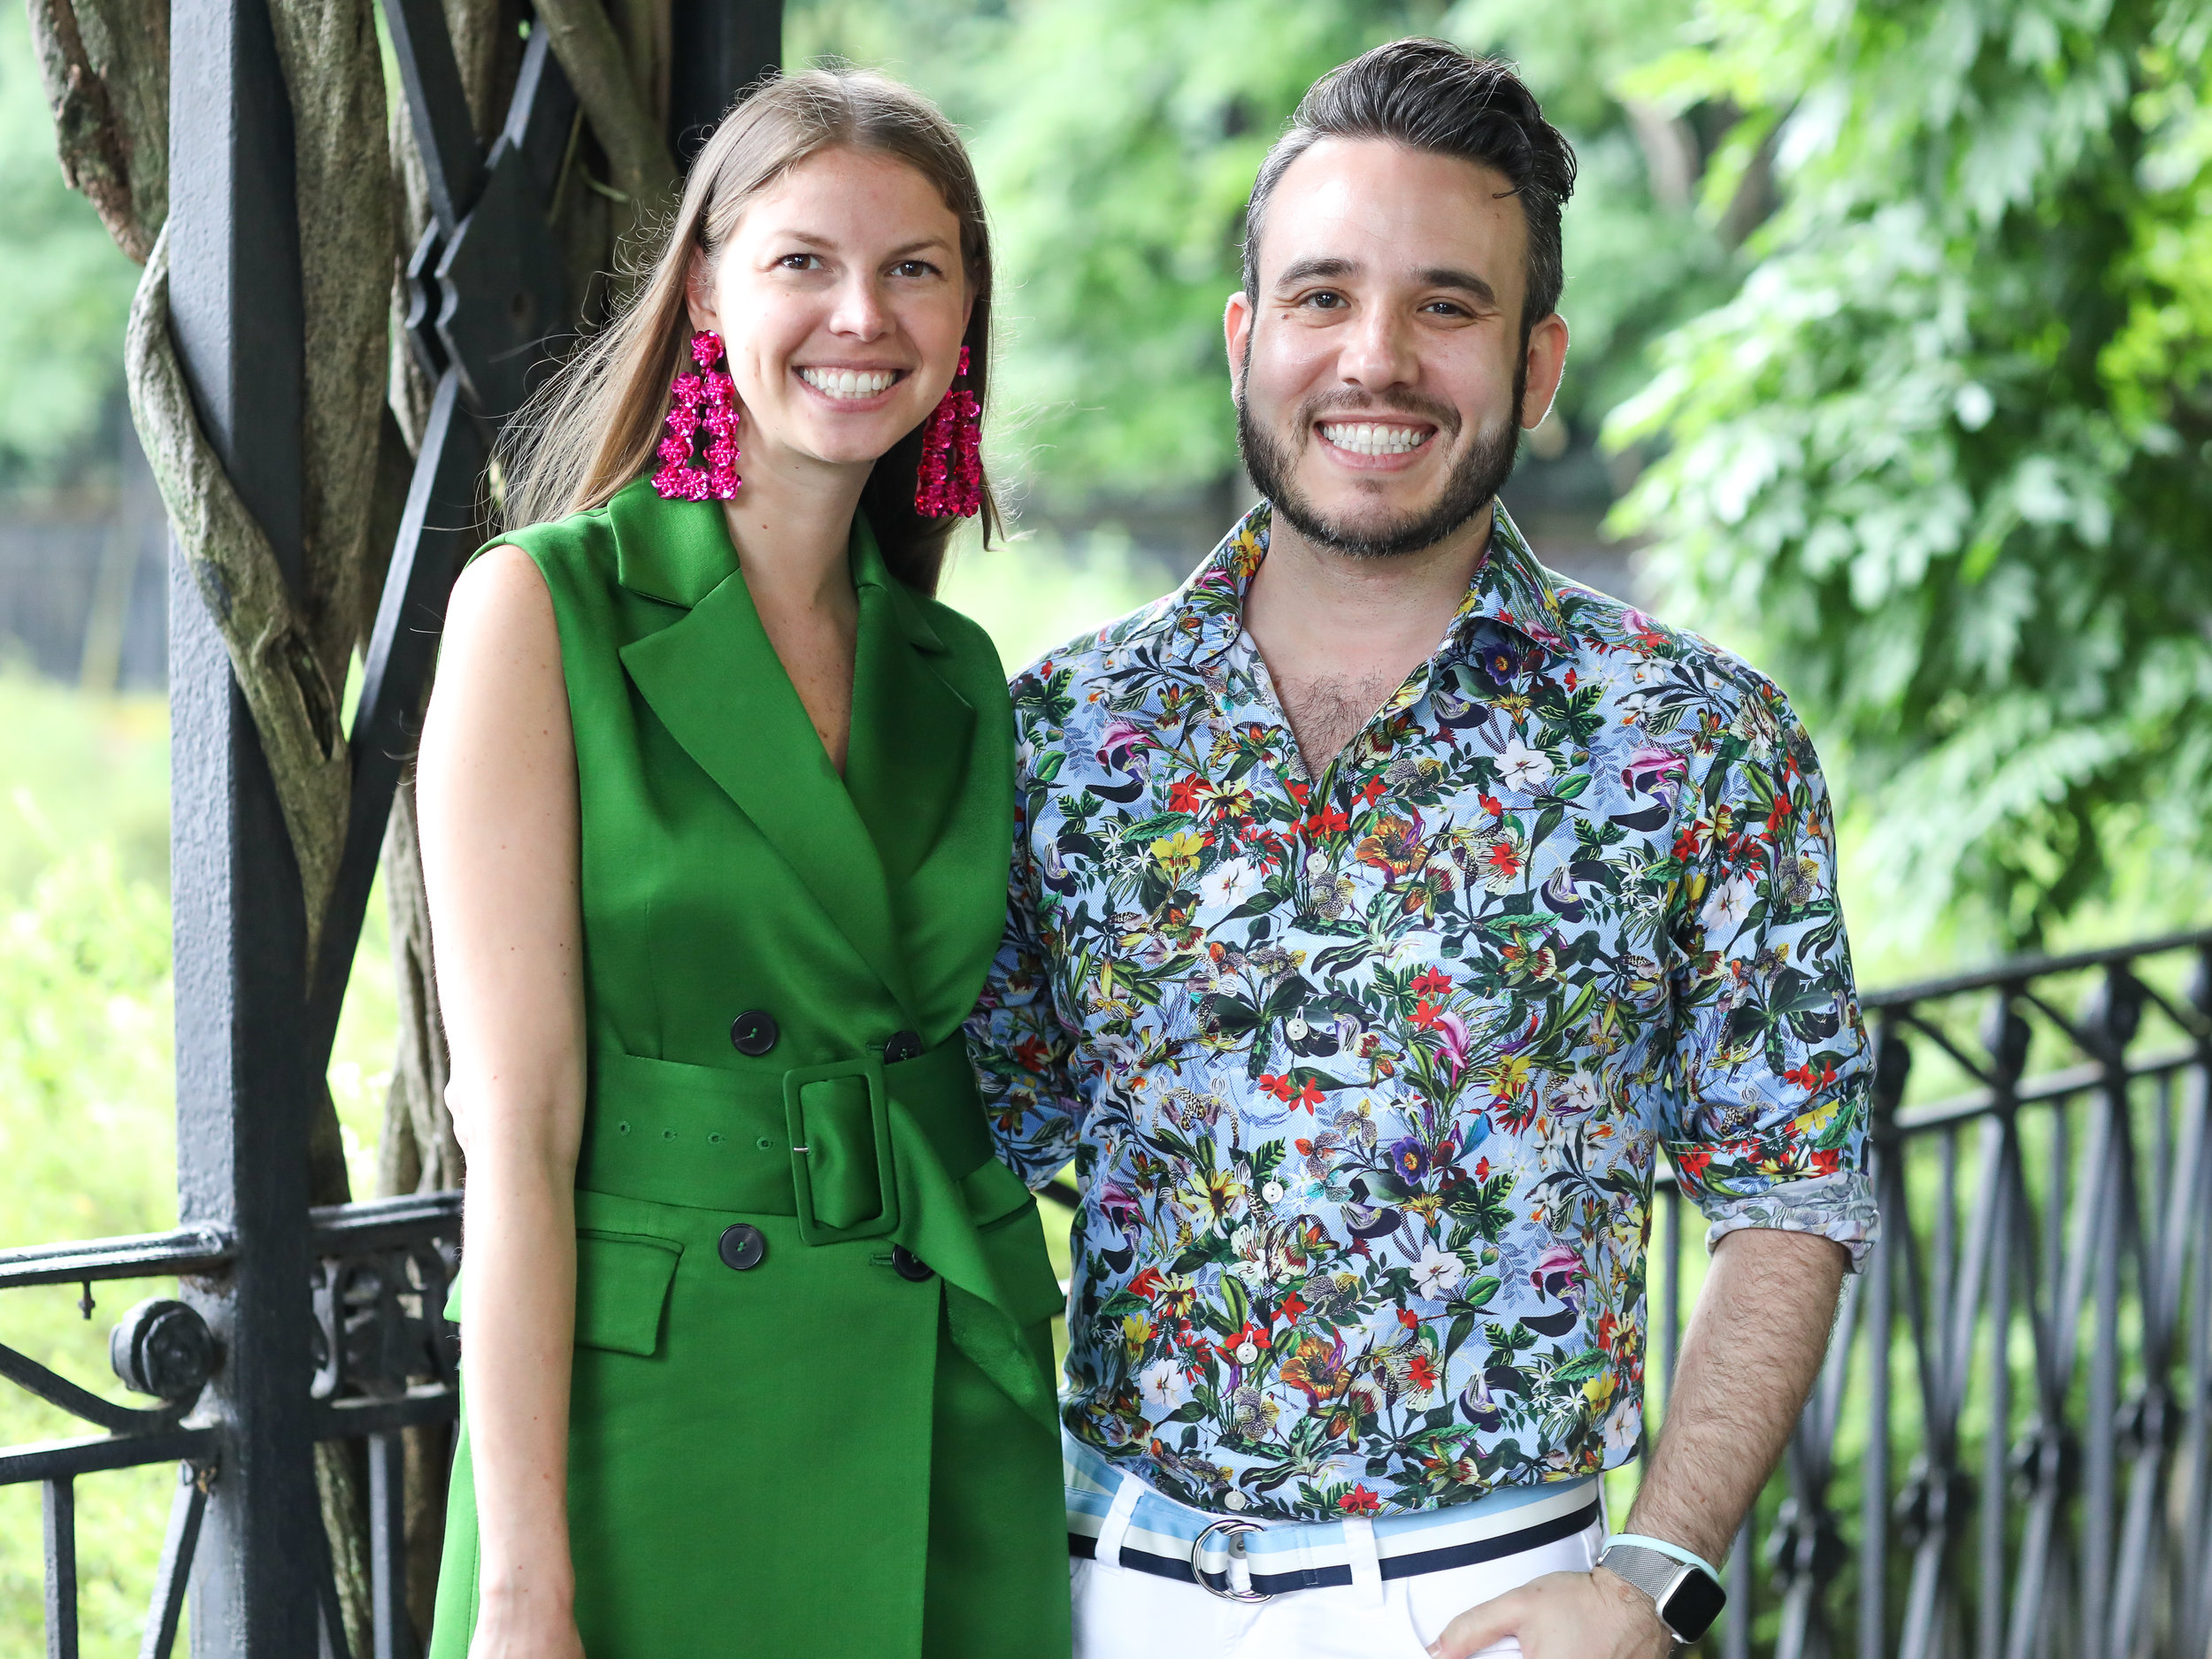 Central Park Conservancy's 14th Annual Evening in the Garden on June 19, 2019